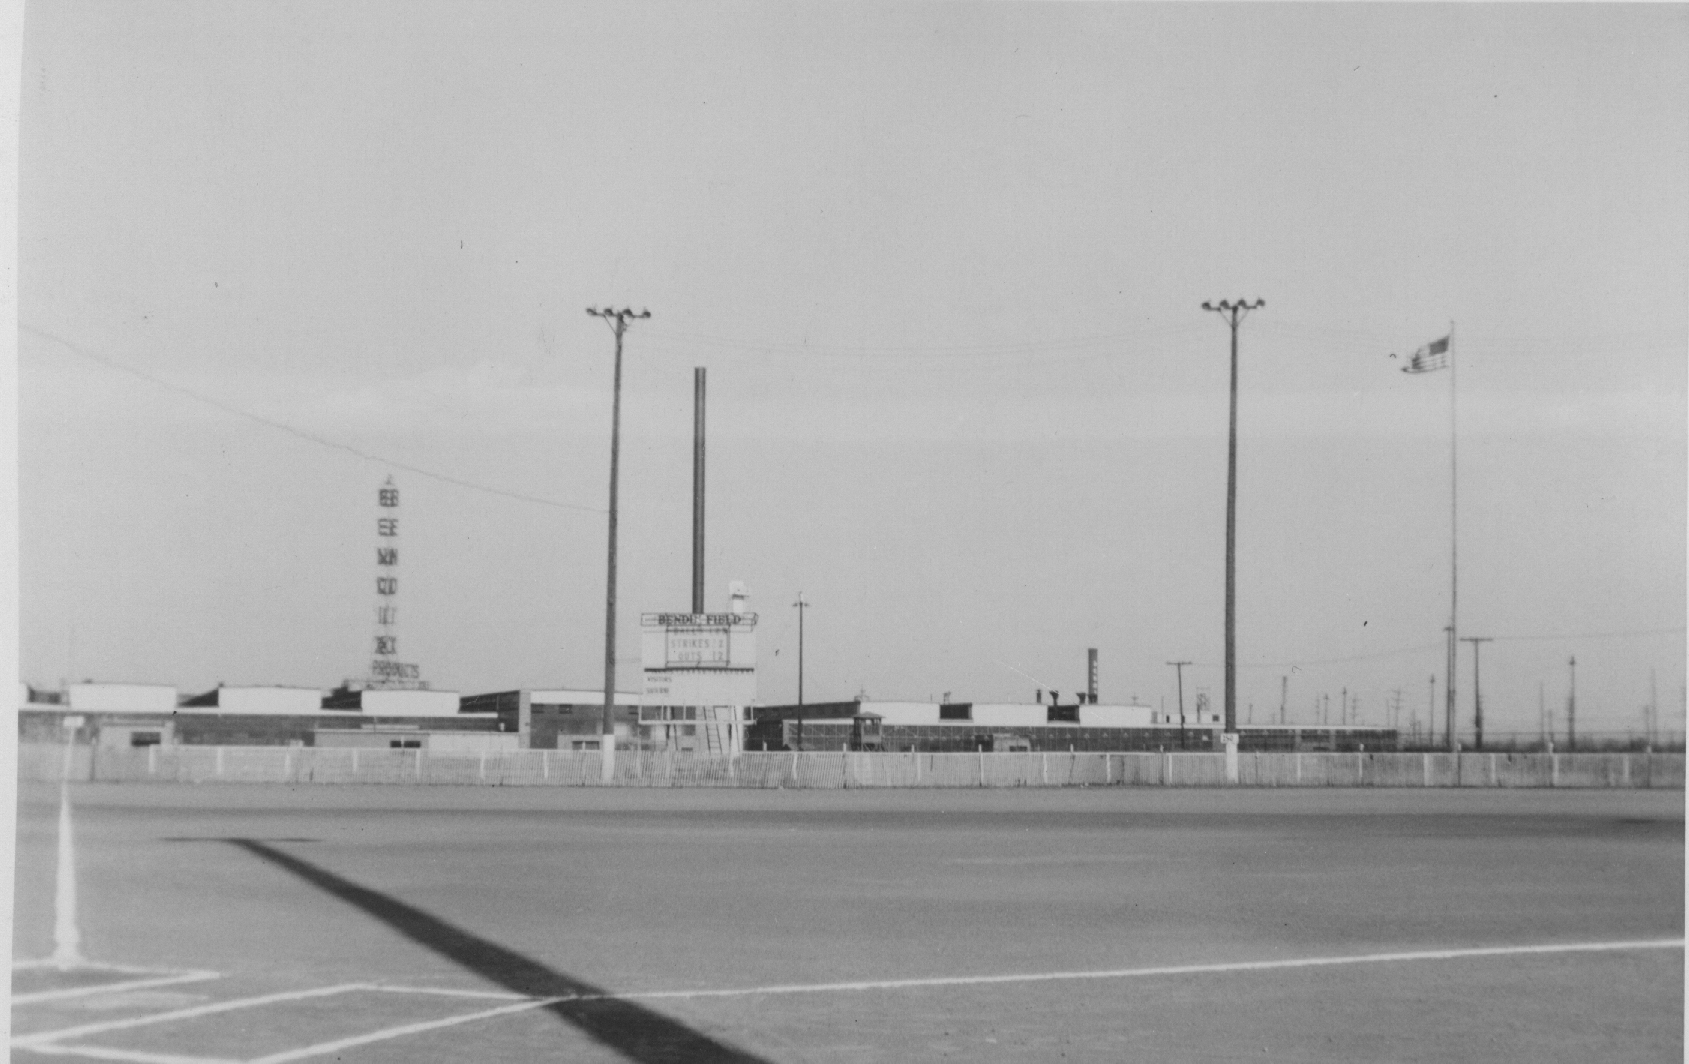 Bendix Field (courtesy of Center for History, South Bend)